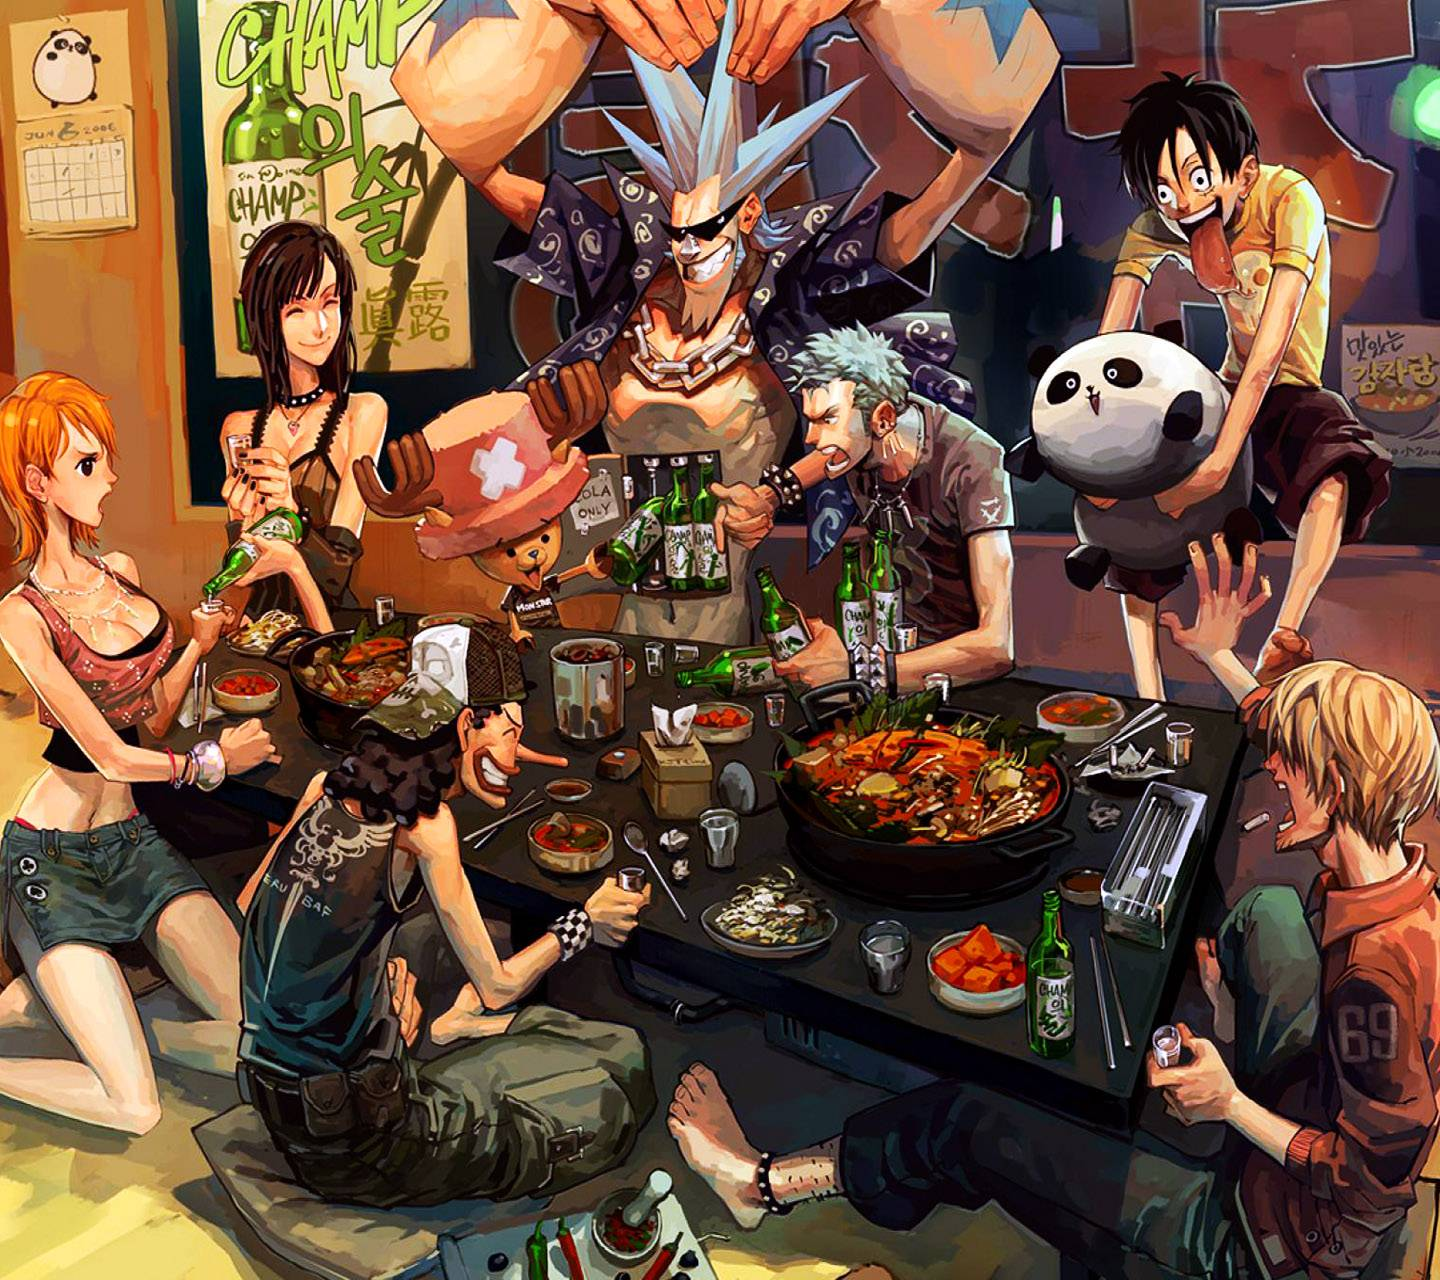 Straw hats party